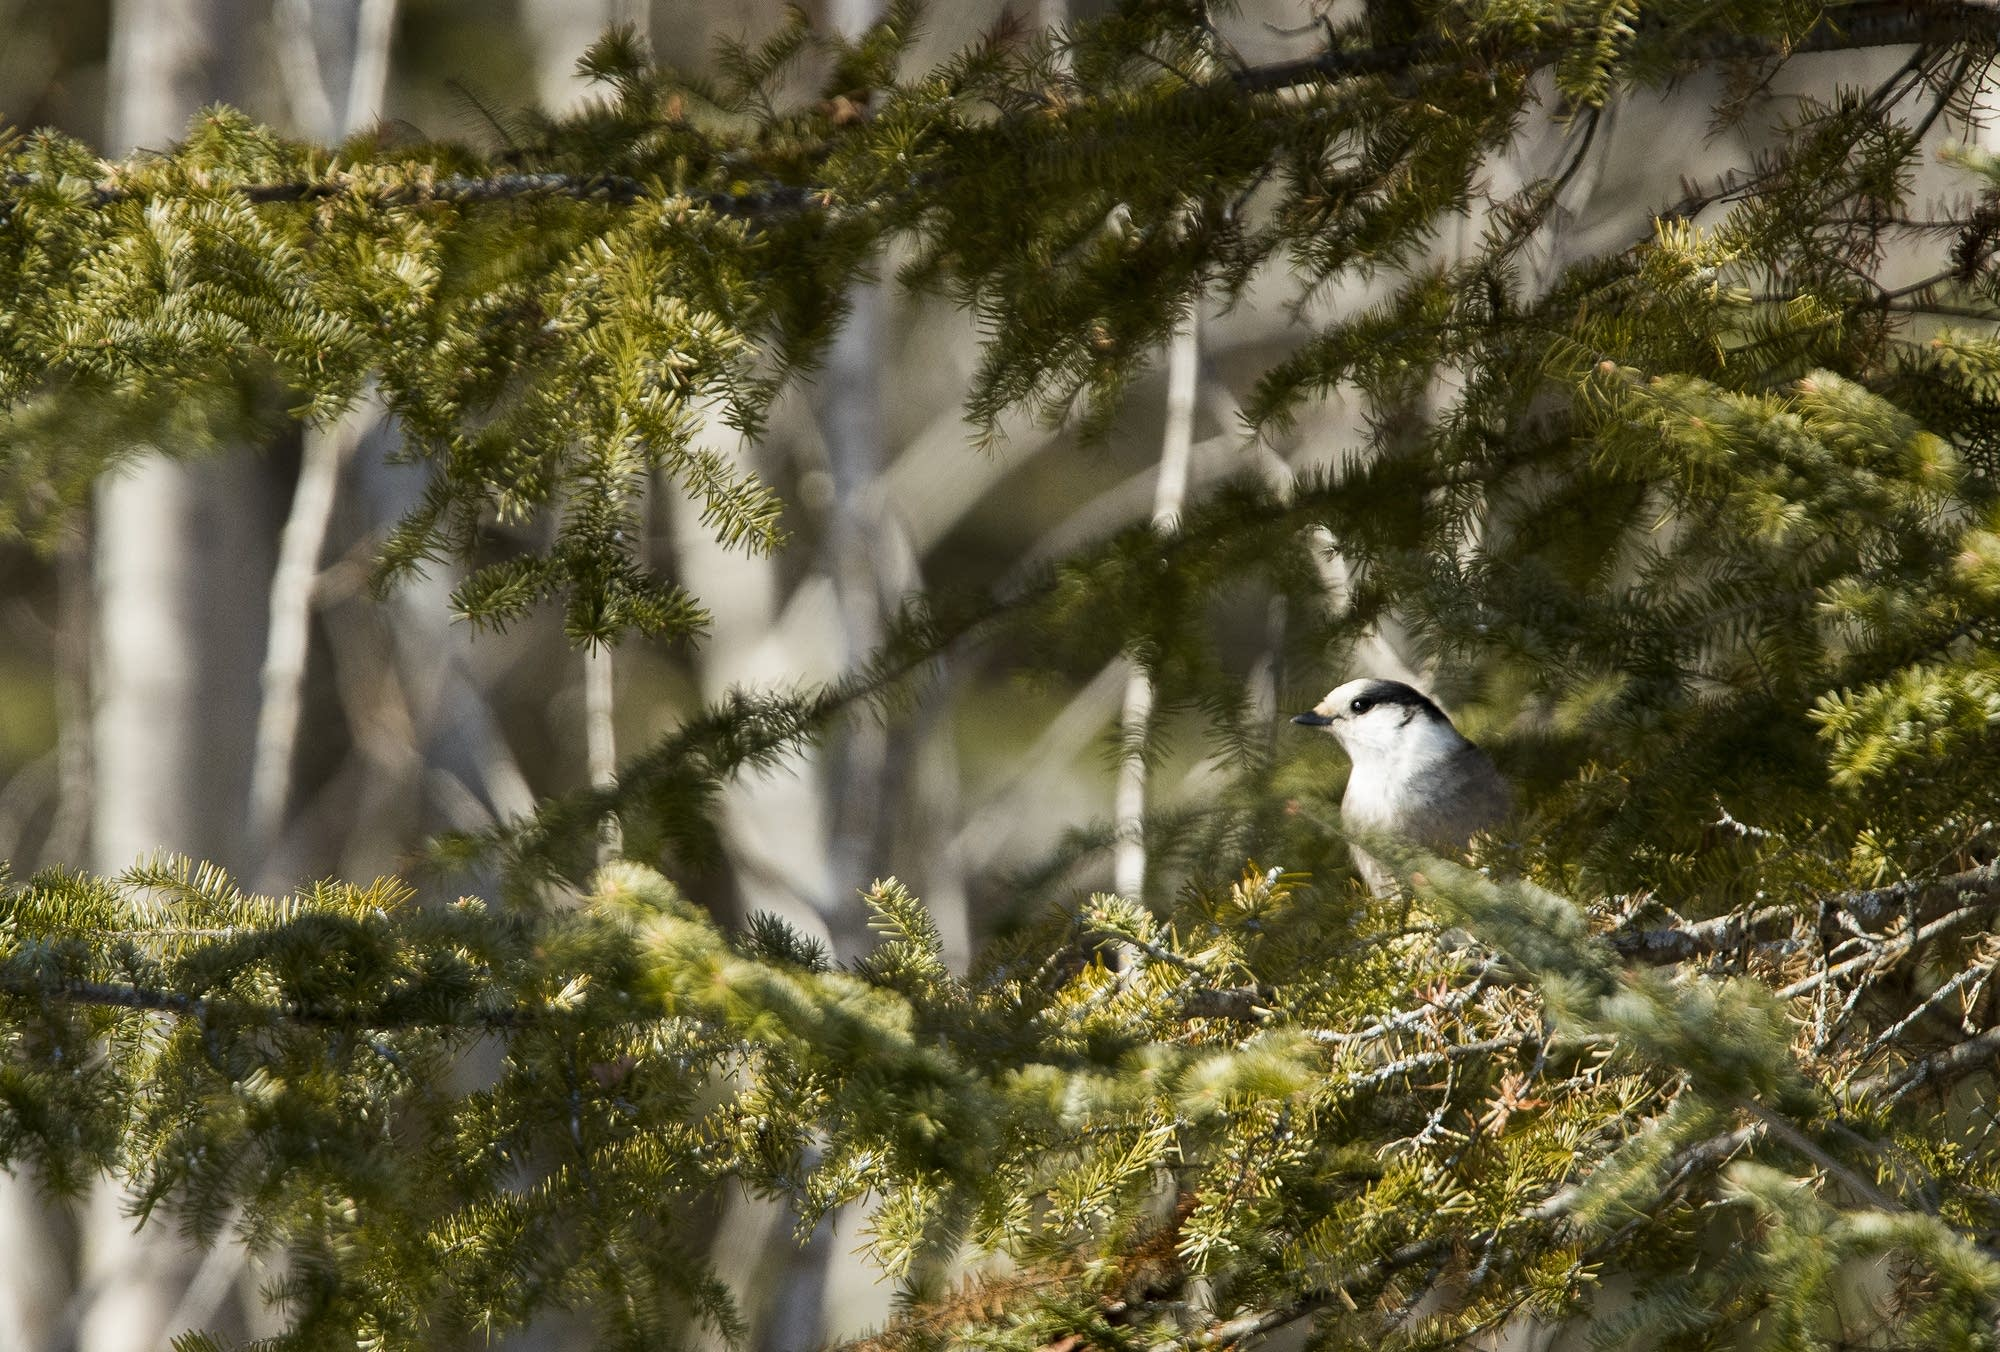 A gray jay hangs out in a pine tree